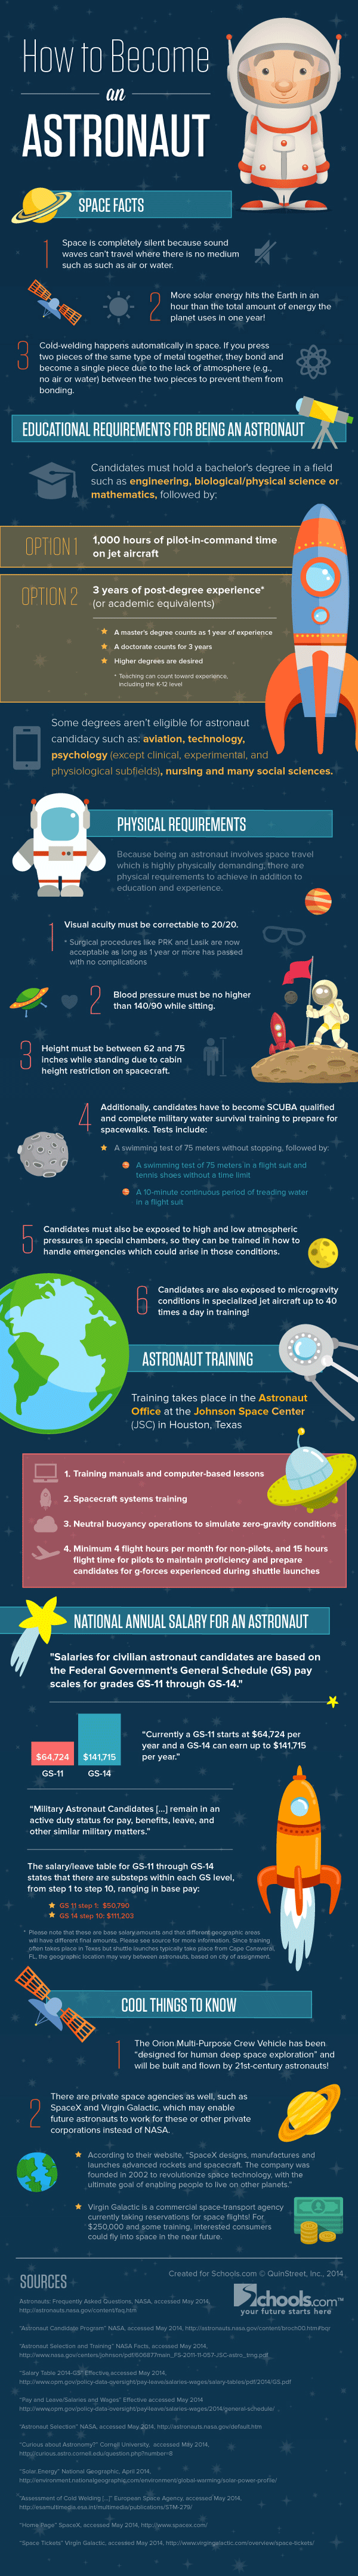 How To Become An Astronaut Infographic